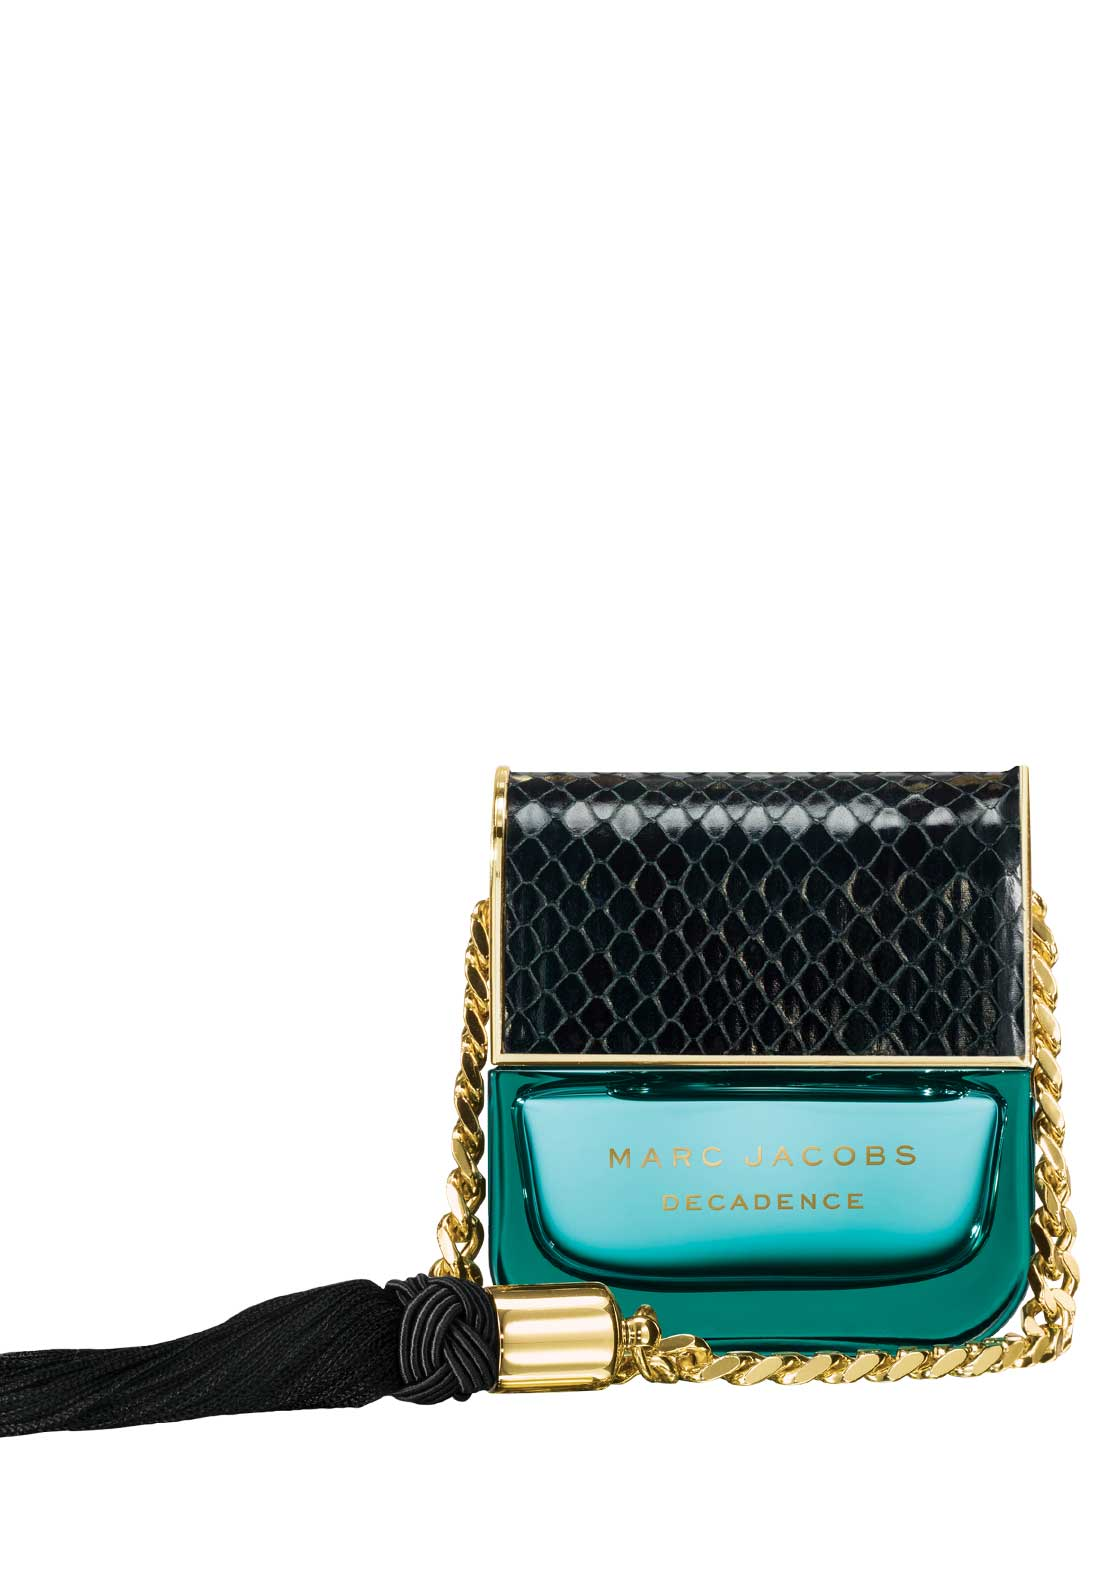 Marc Jacobs Decadence Eau de Parfum for Her, 50ml